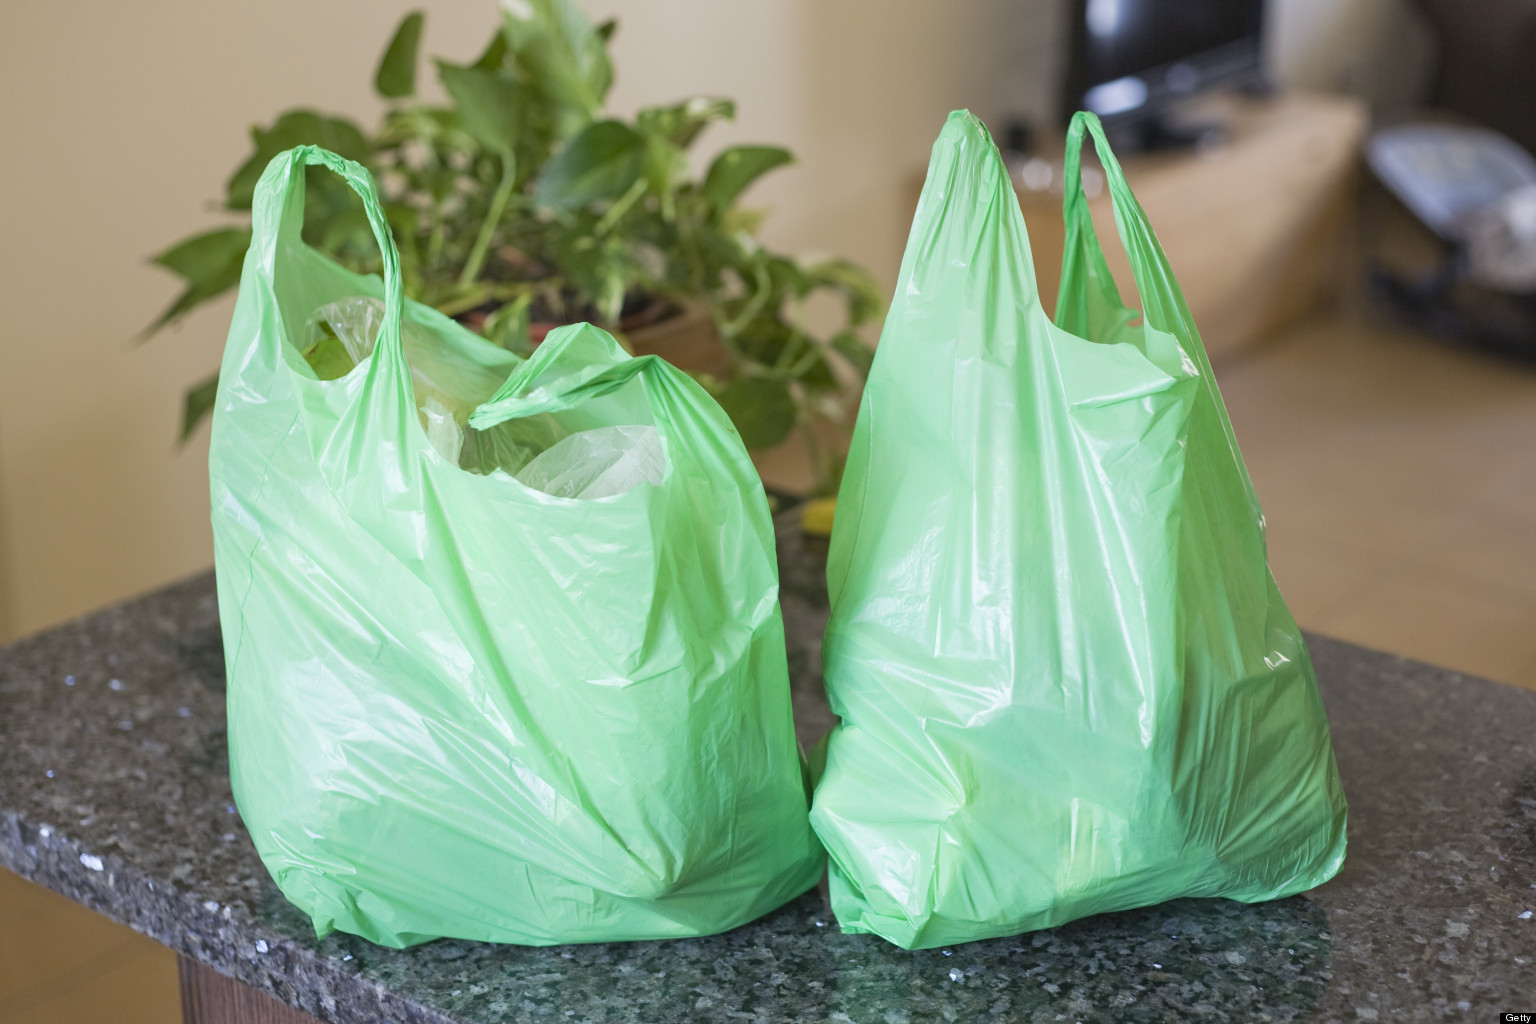 plastic bags 2 essay Read this essay on why not to use plastic bags come browse our large digital warehouse of free sample essays get the knowledge you need in order to pass your classes and more.